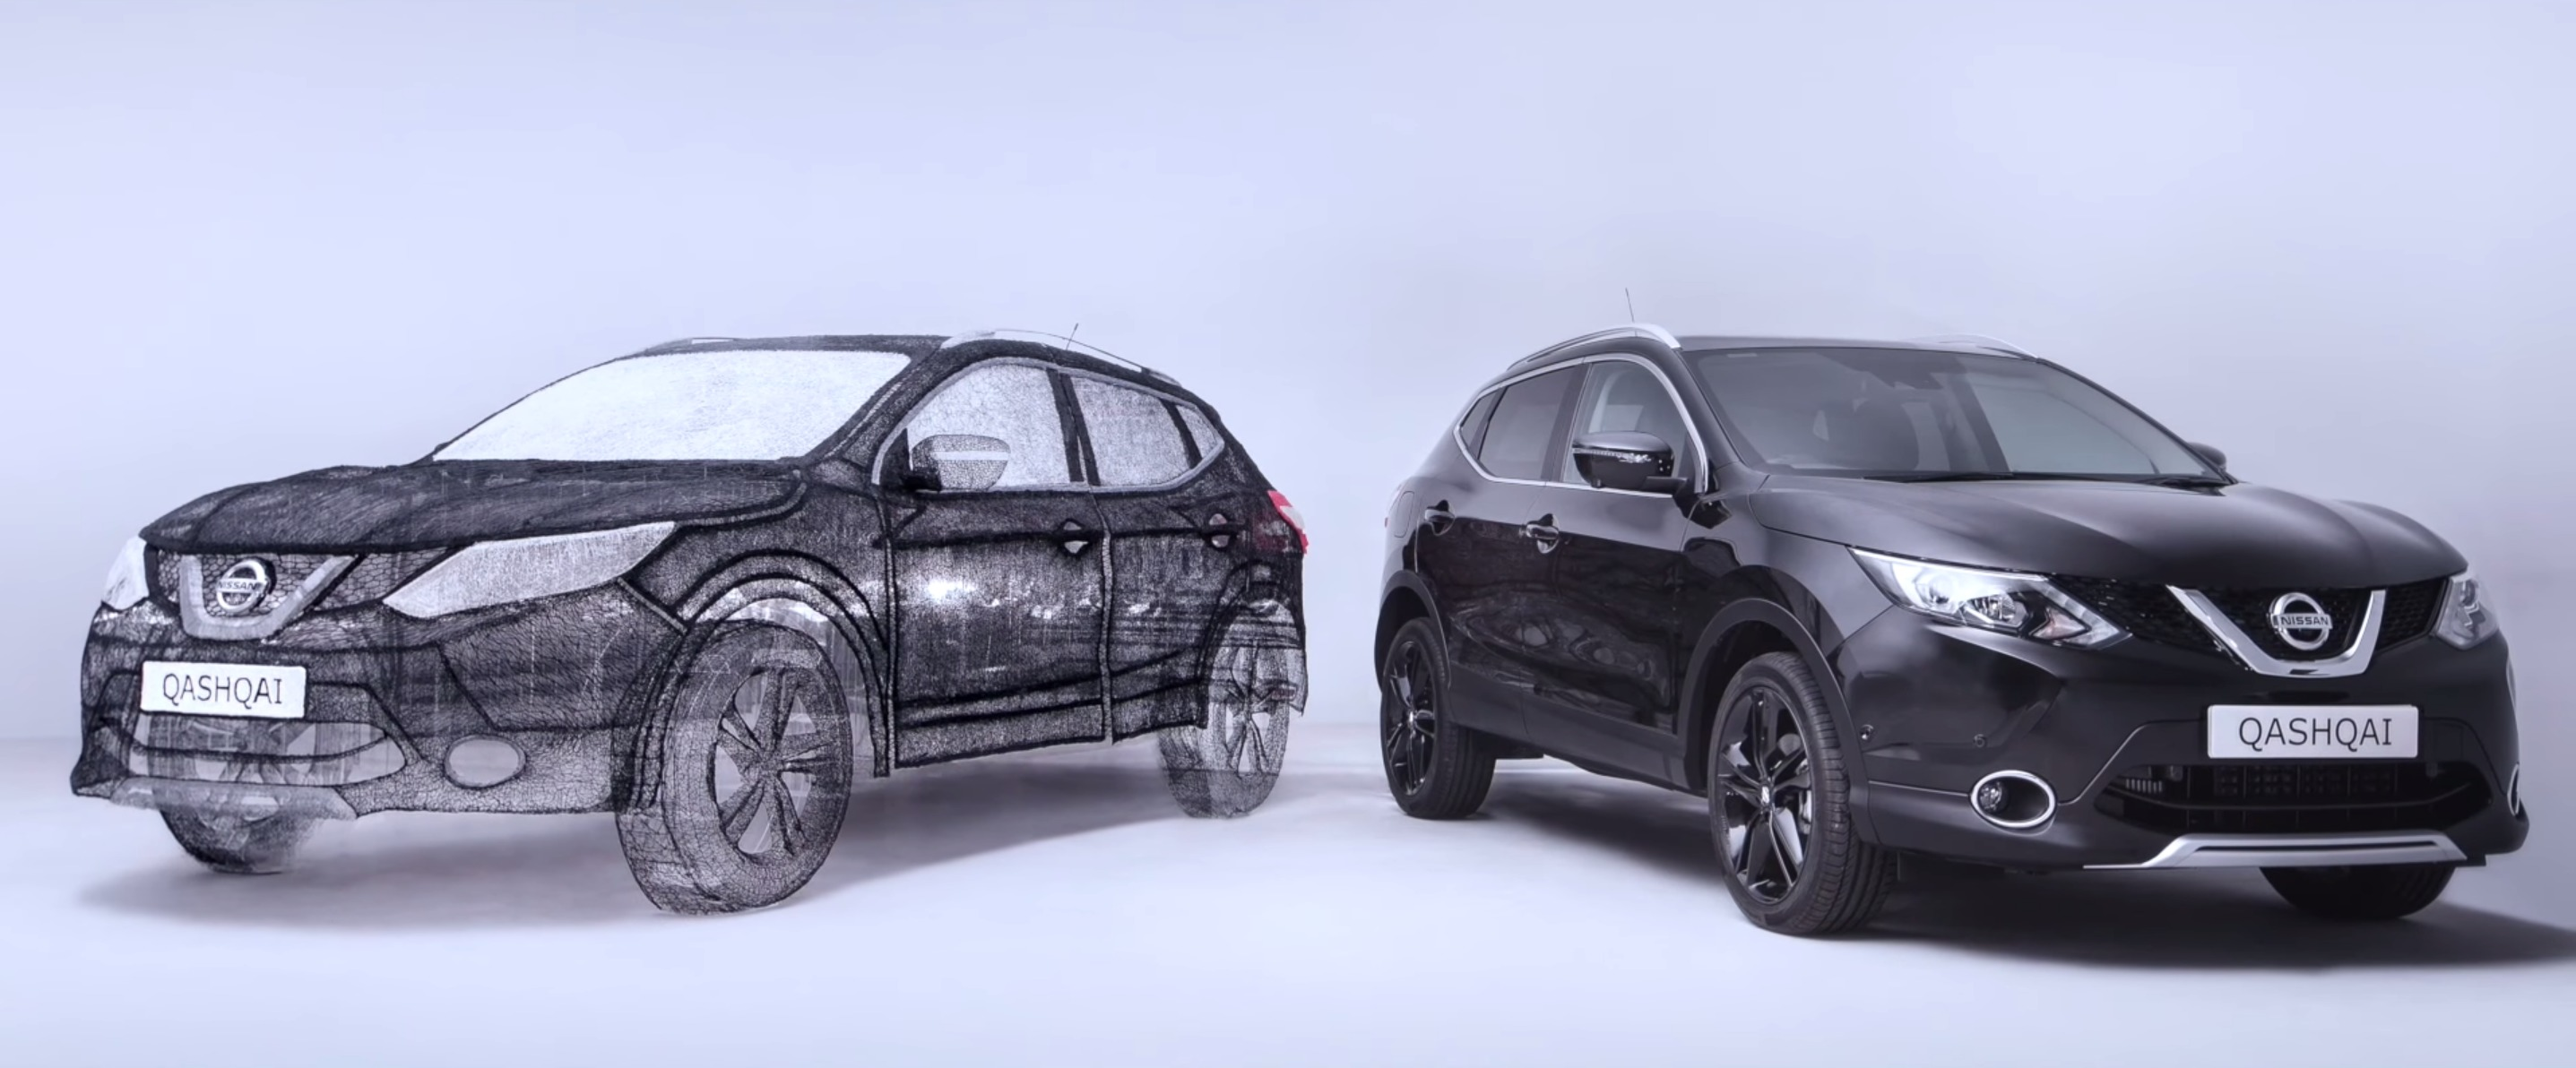 insolite nissan d voile un qashqai r alis au stylo 3d. Black Bedroom Furniture Sets. Home Design Ideas